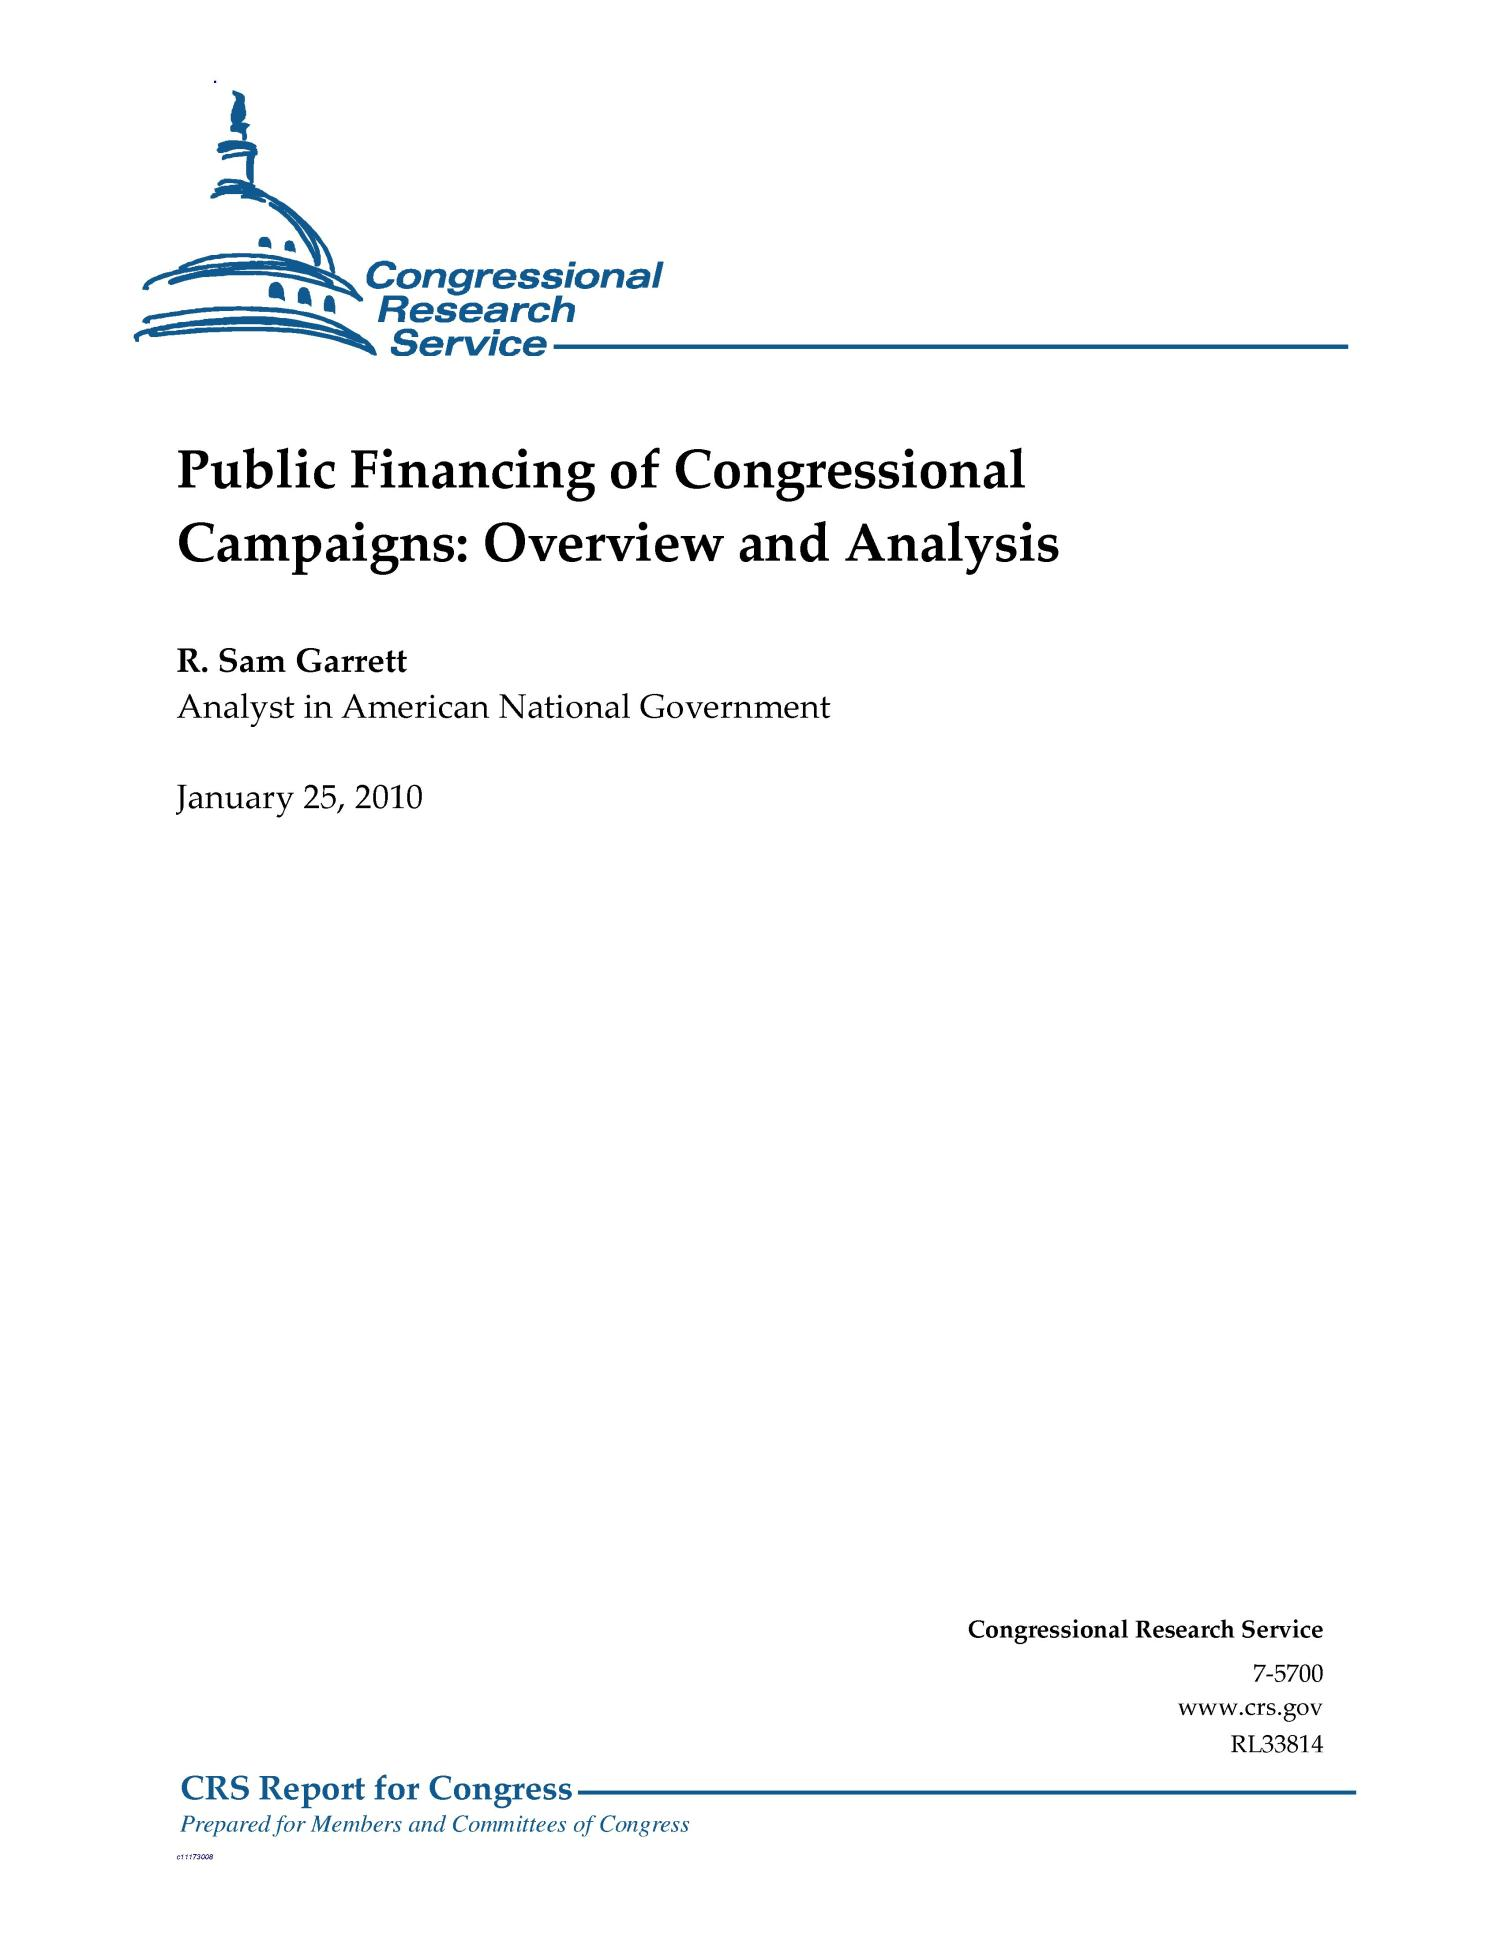 Public Financing of Congressional Campaigns: Overview and Analysis                                                                                                      [Sequence #]: 1 of 88